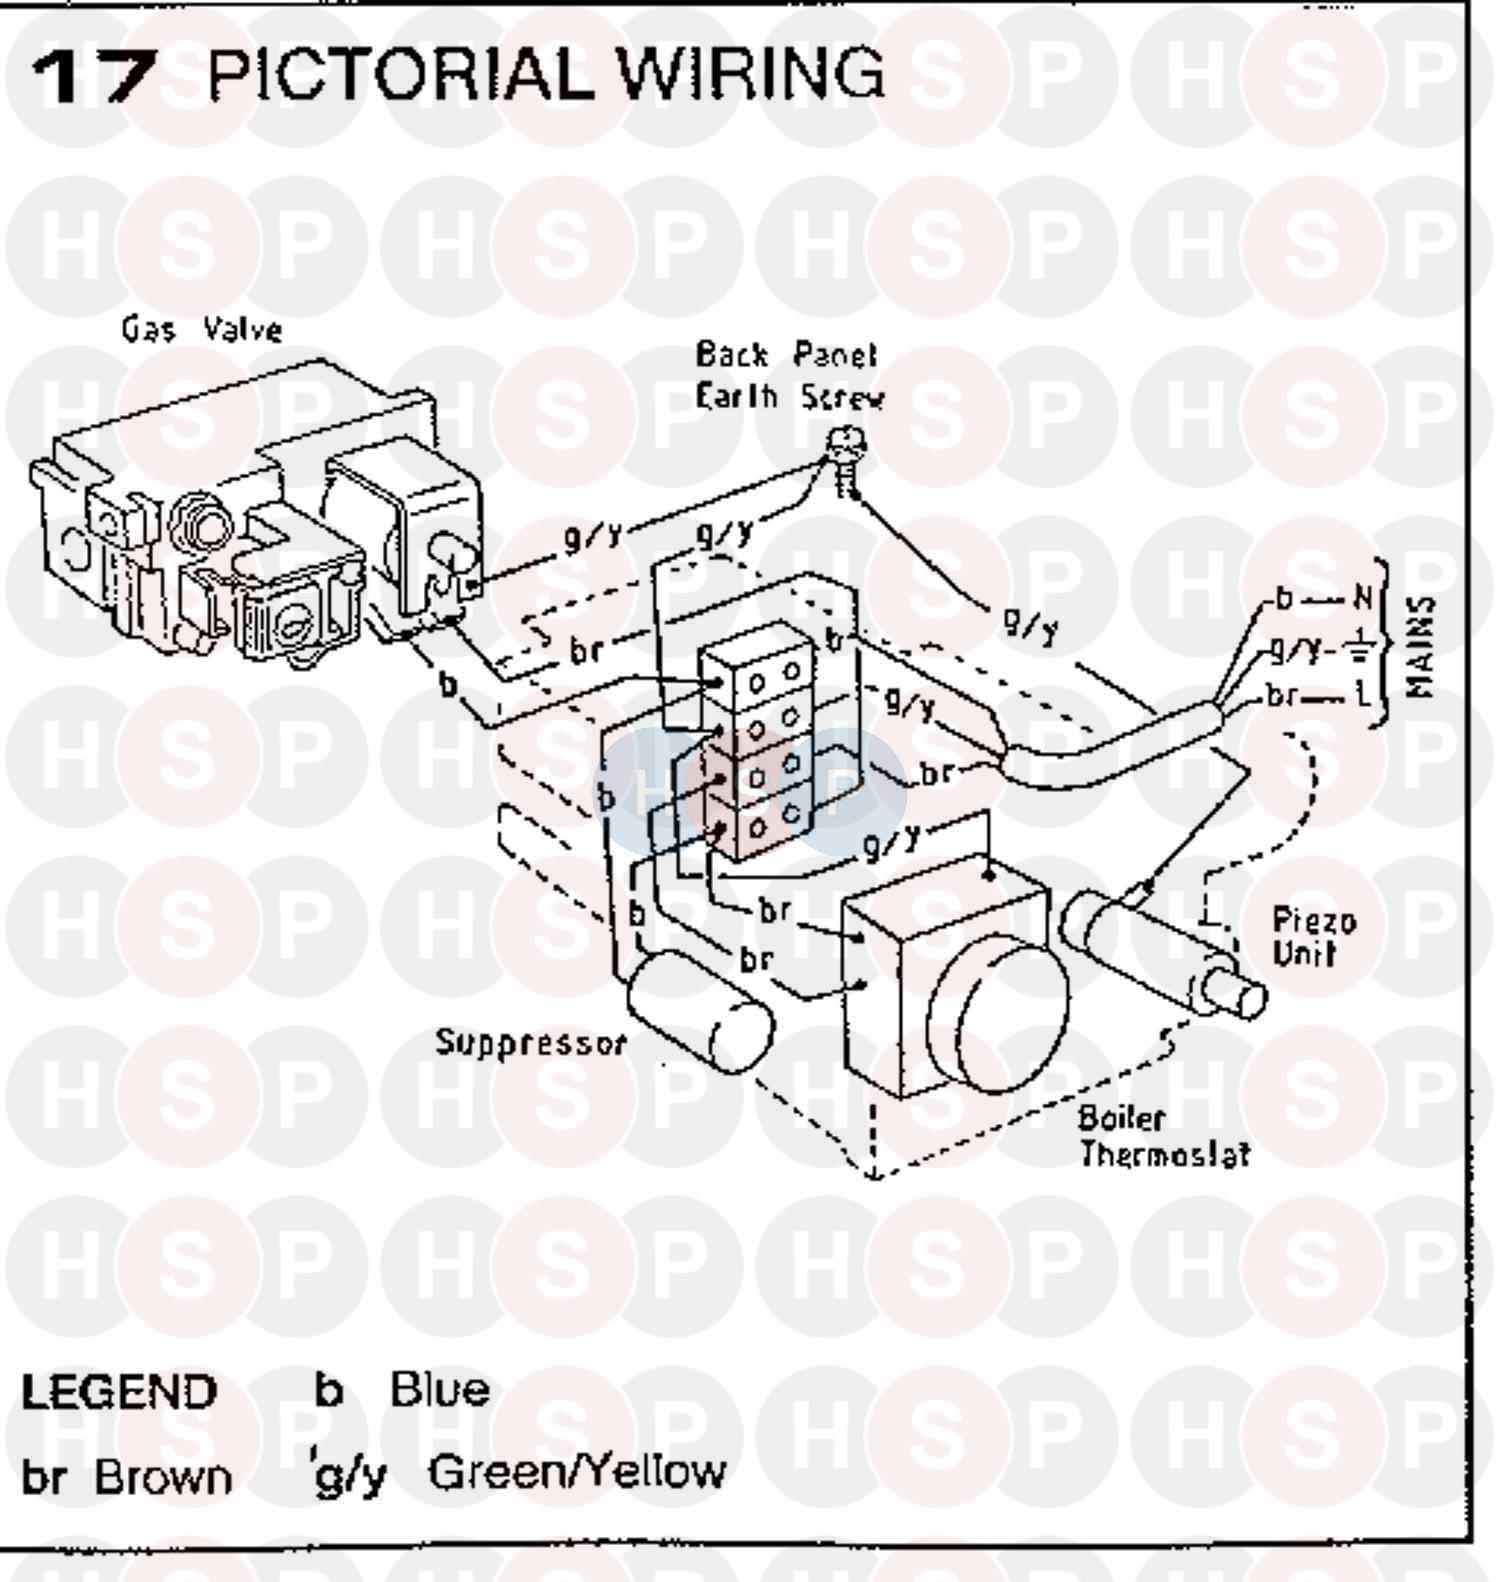 Ideal classic rs 40 wiring diagram 1 diagram heating spare parts click the diagram to open it on a new page asfbconference2016 Images